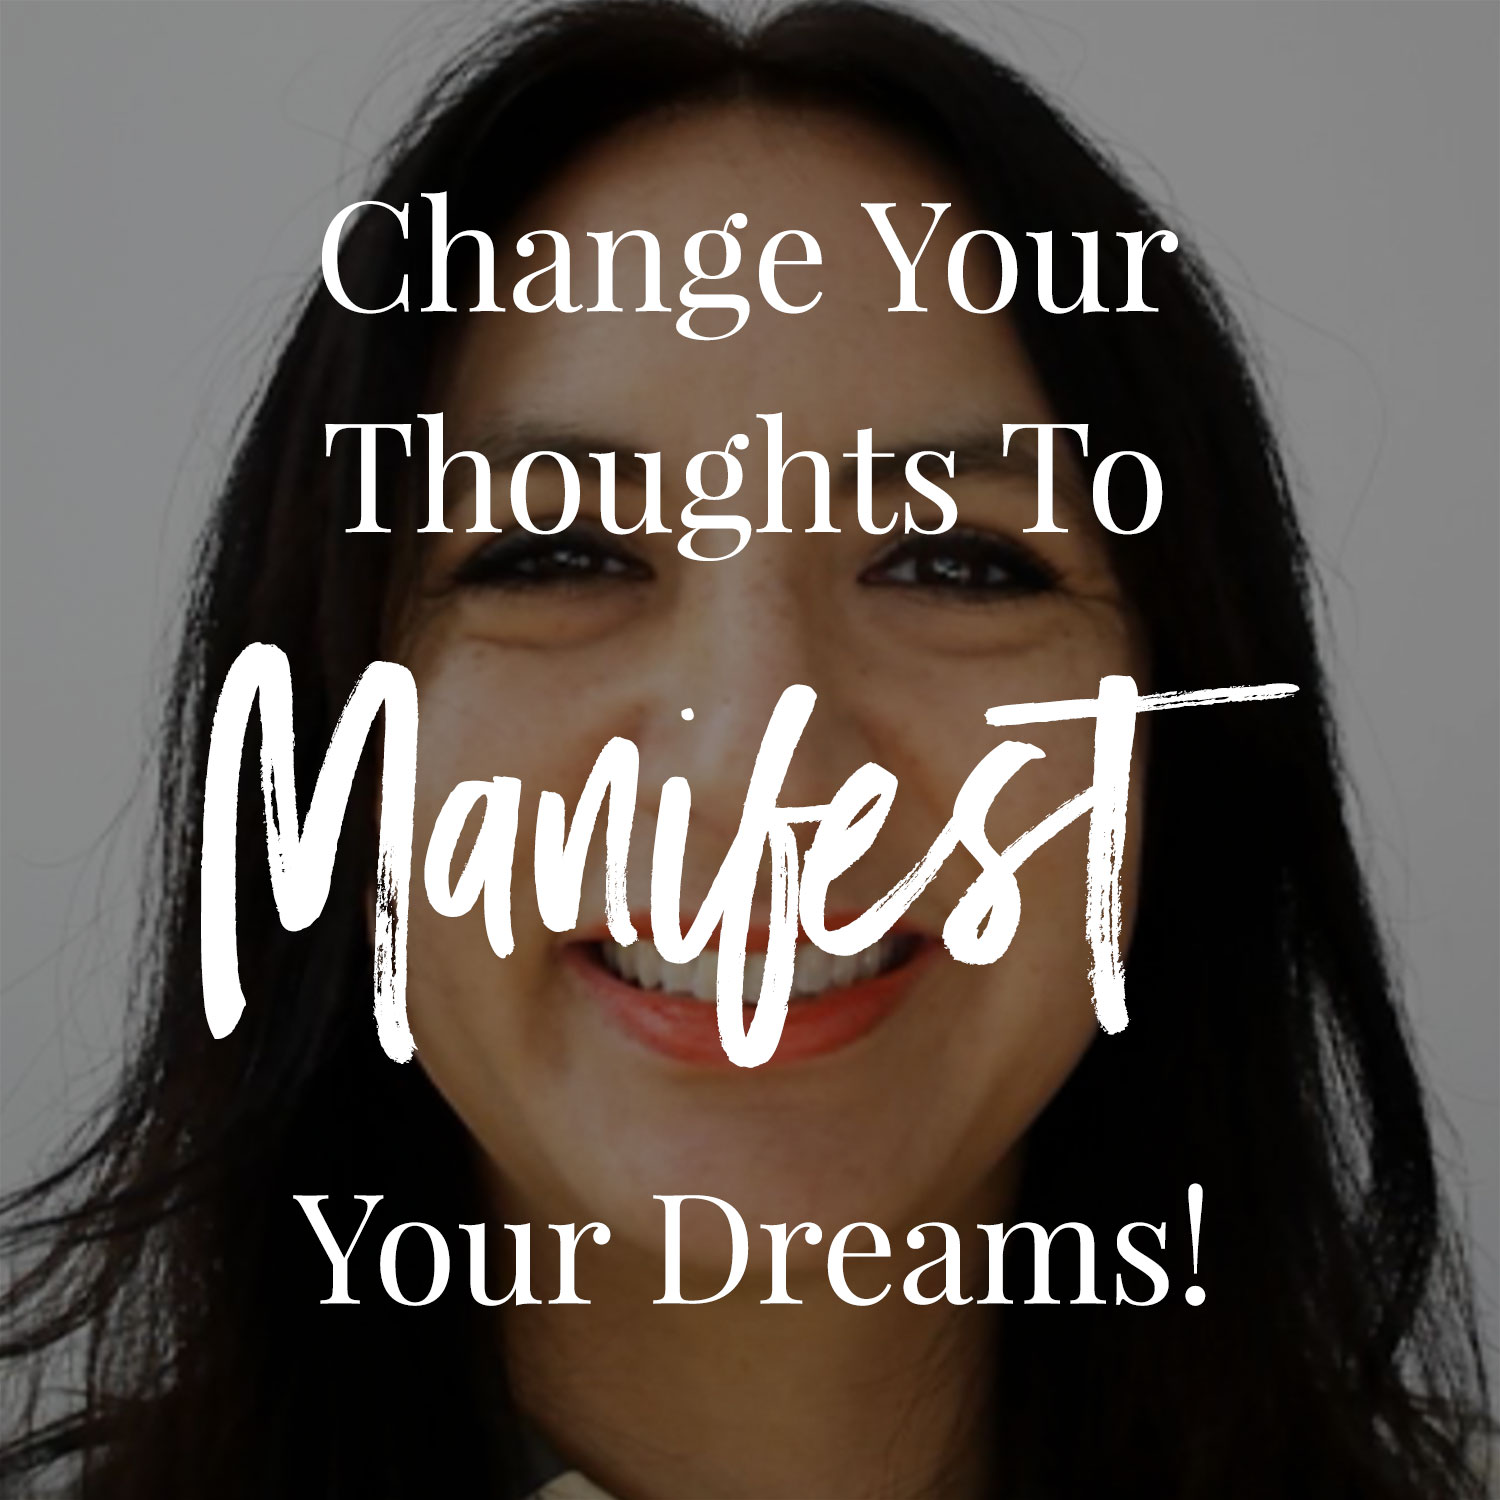 Change Your Thoughts To Manifest Your Dreams!